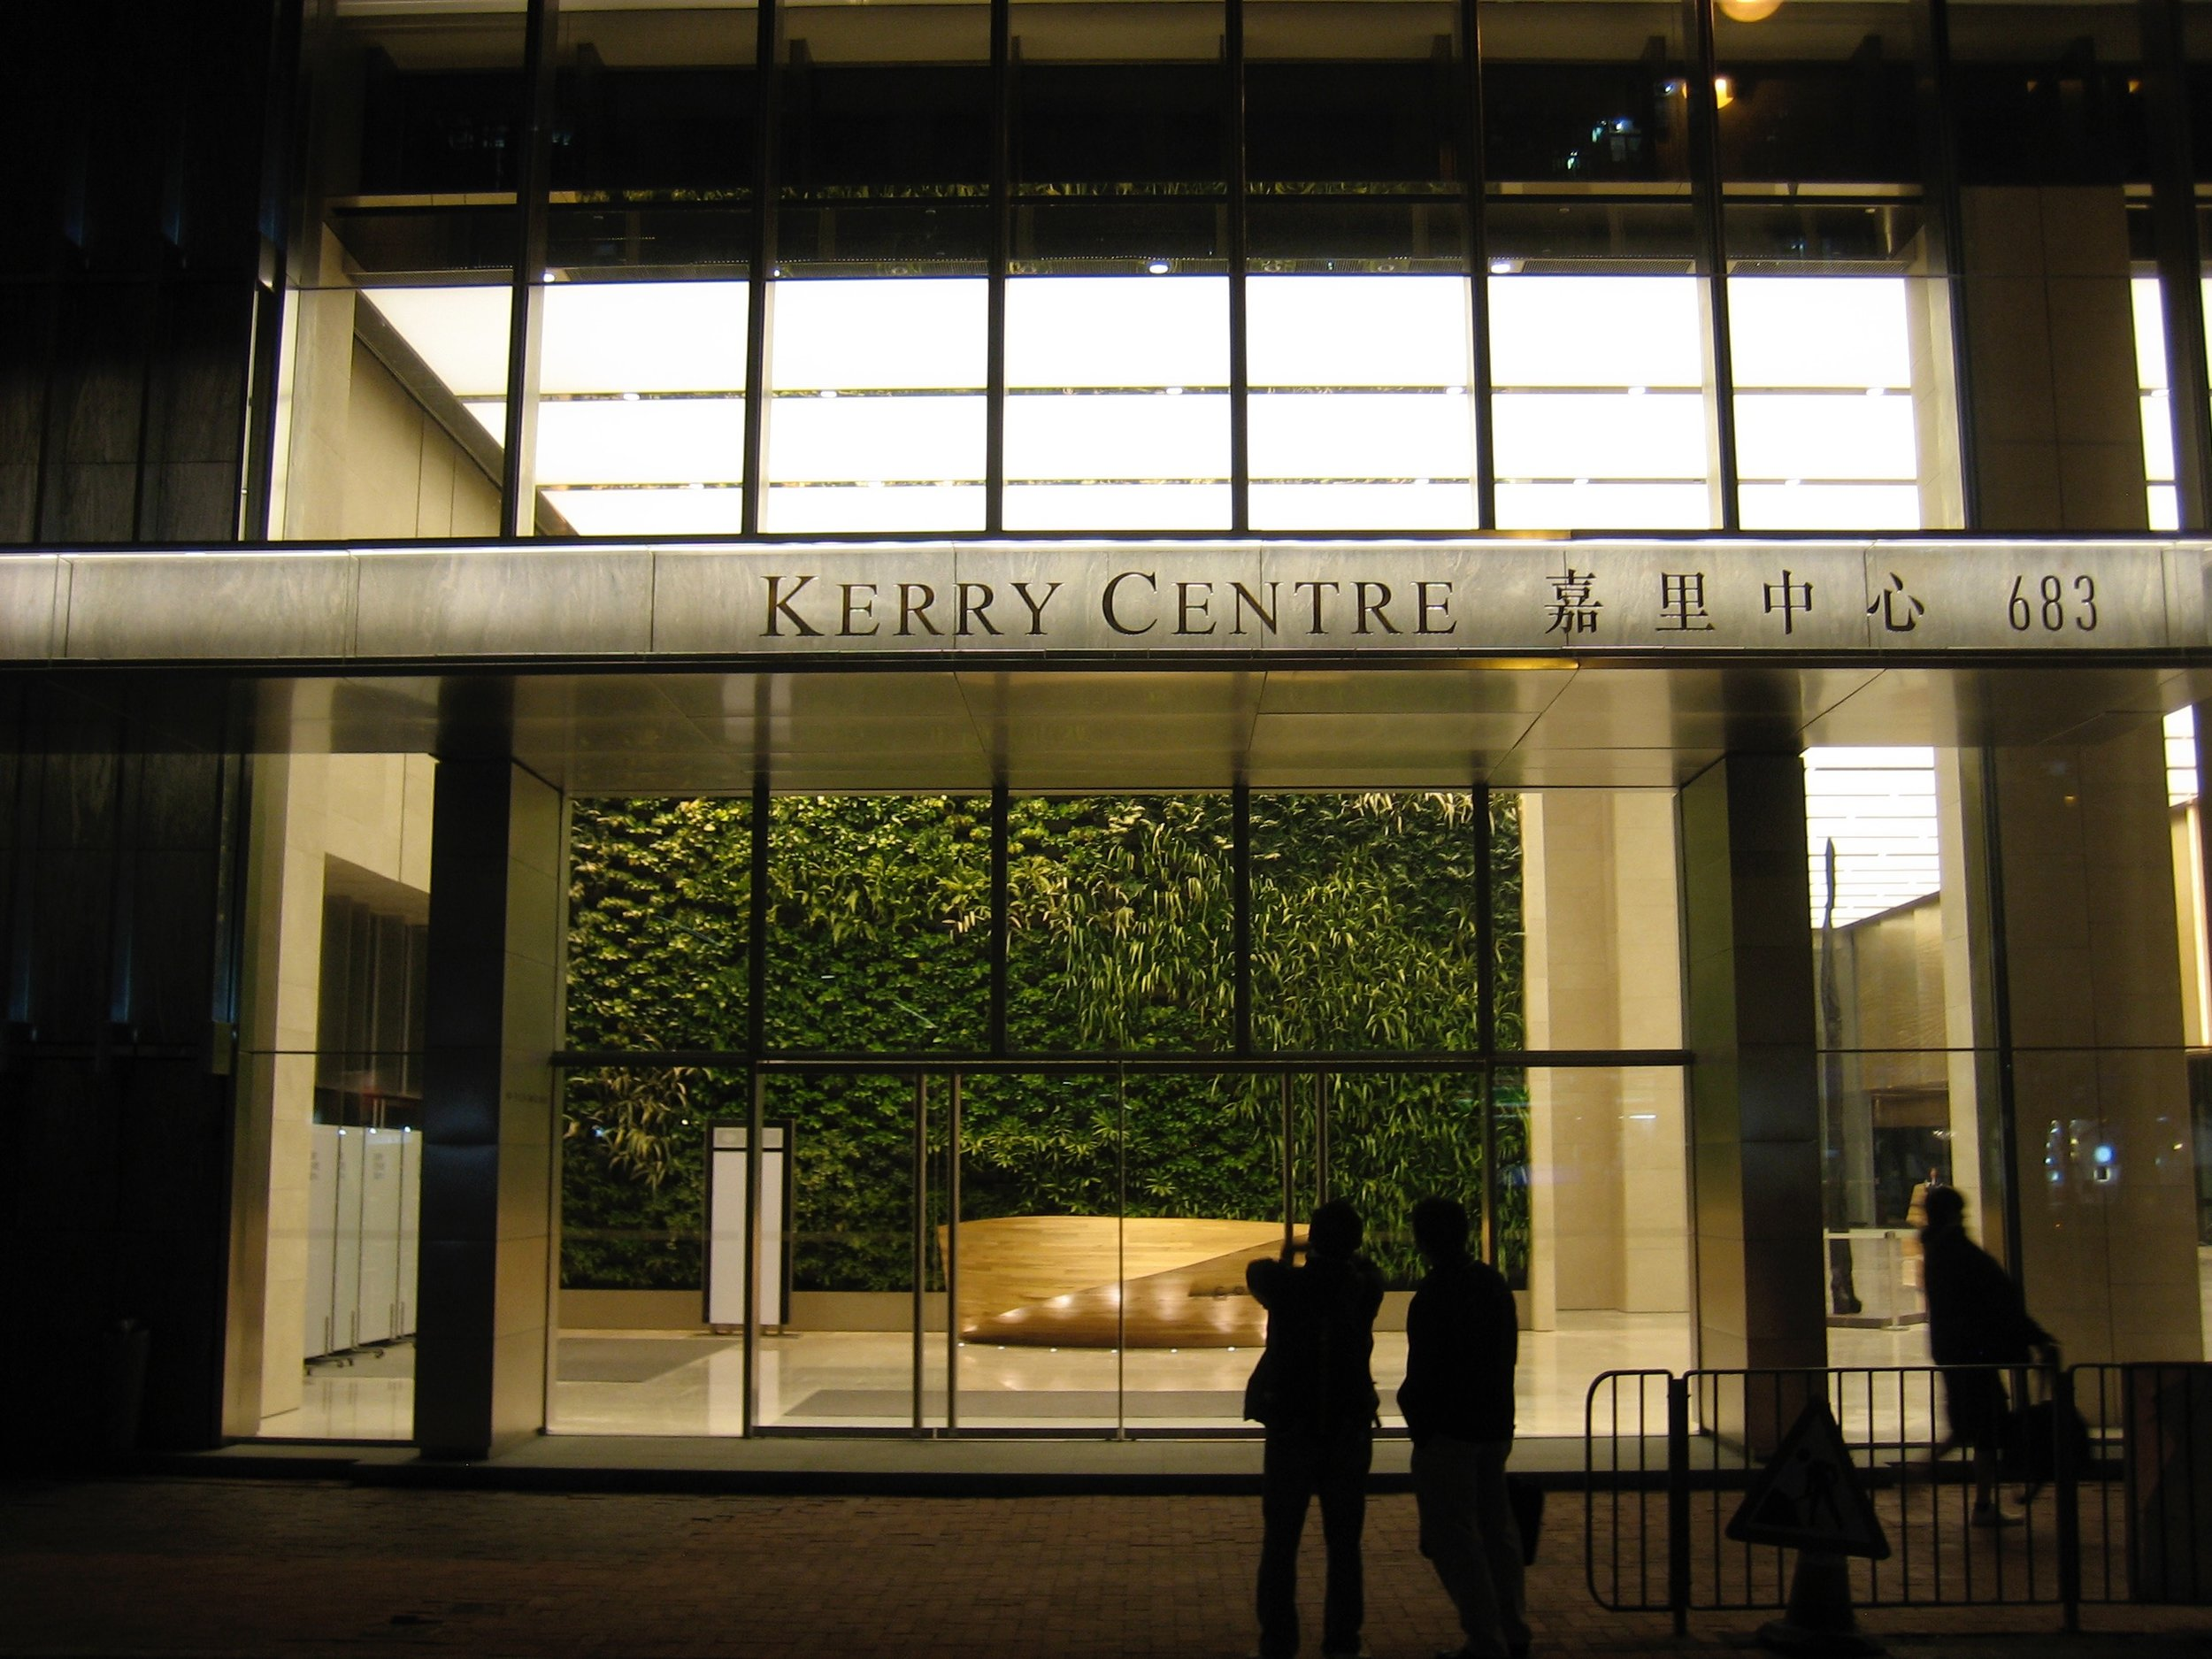 KERRY CENTRE, HEADQUARTER, HONG KONG